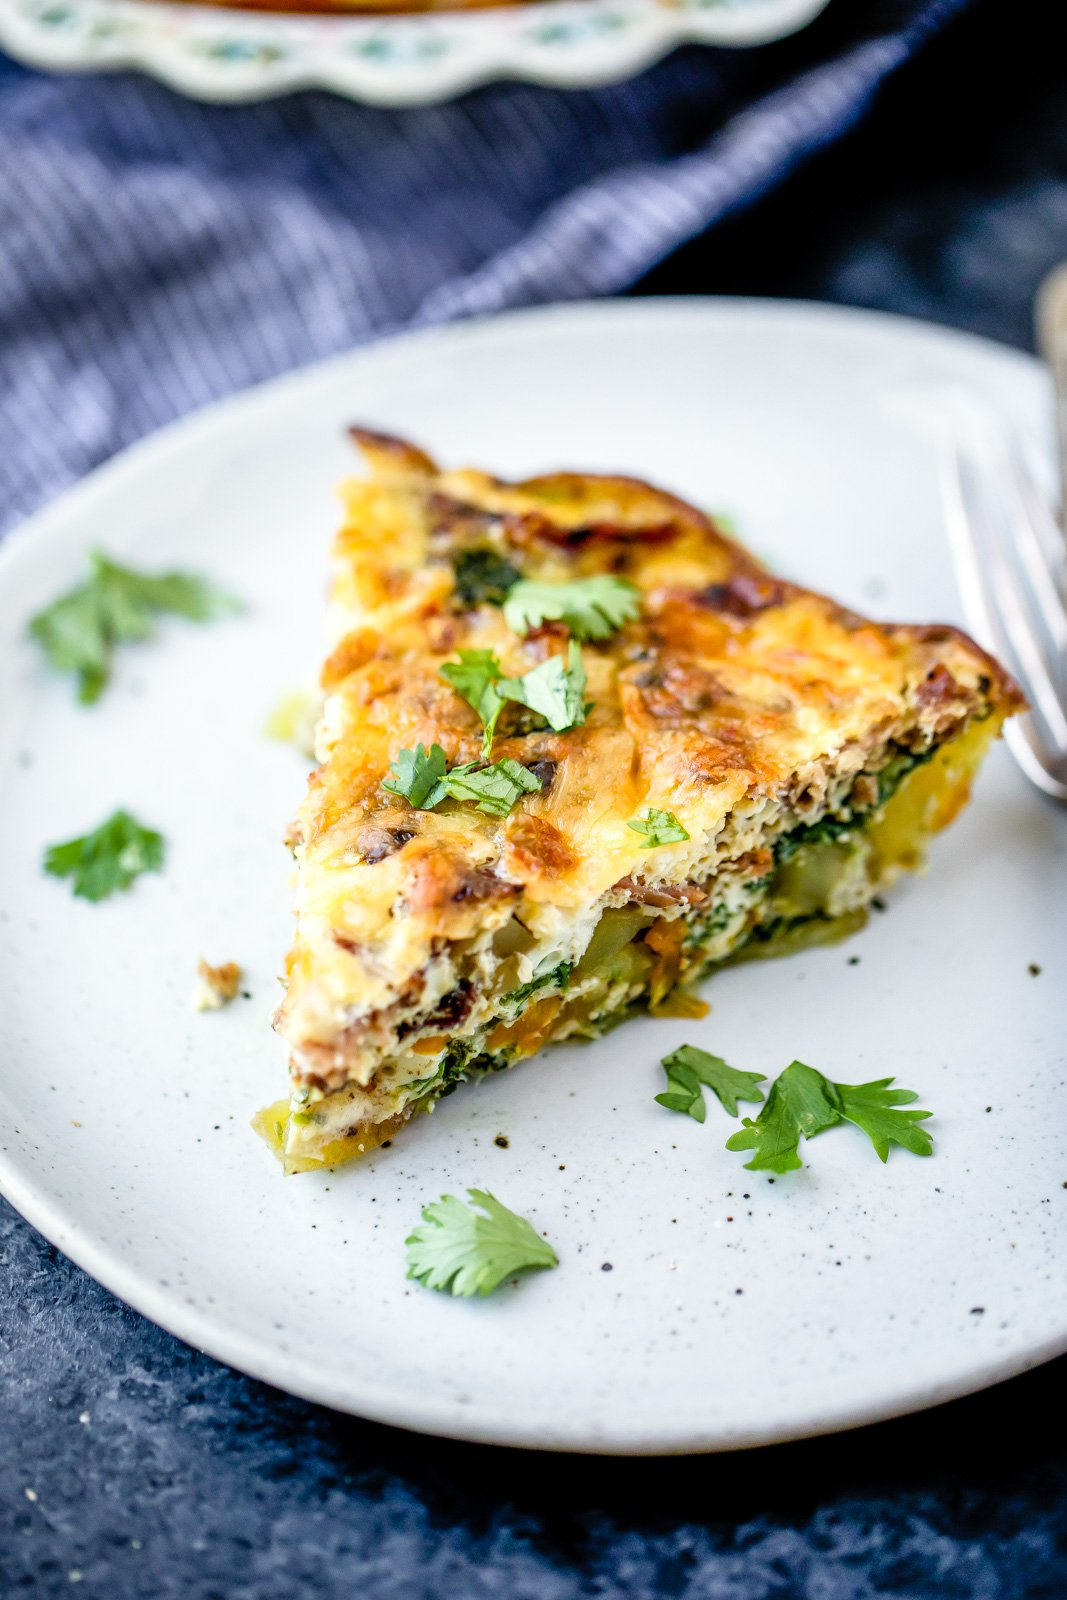 slice of low carb turkey bacon quiche on a plate